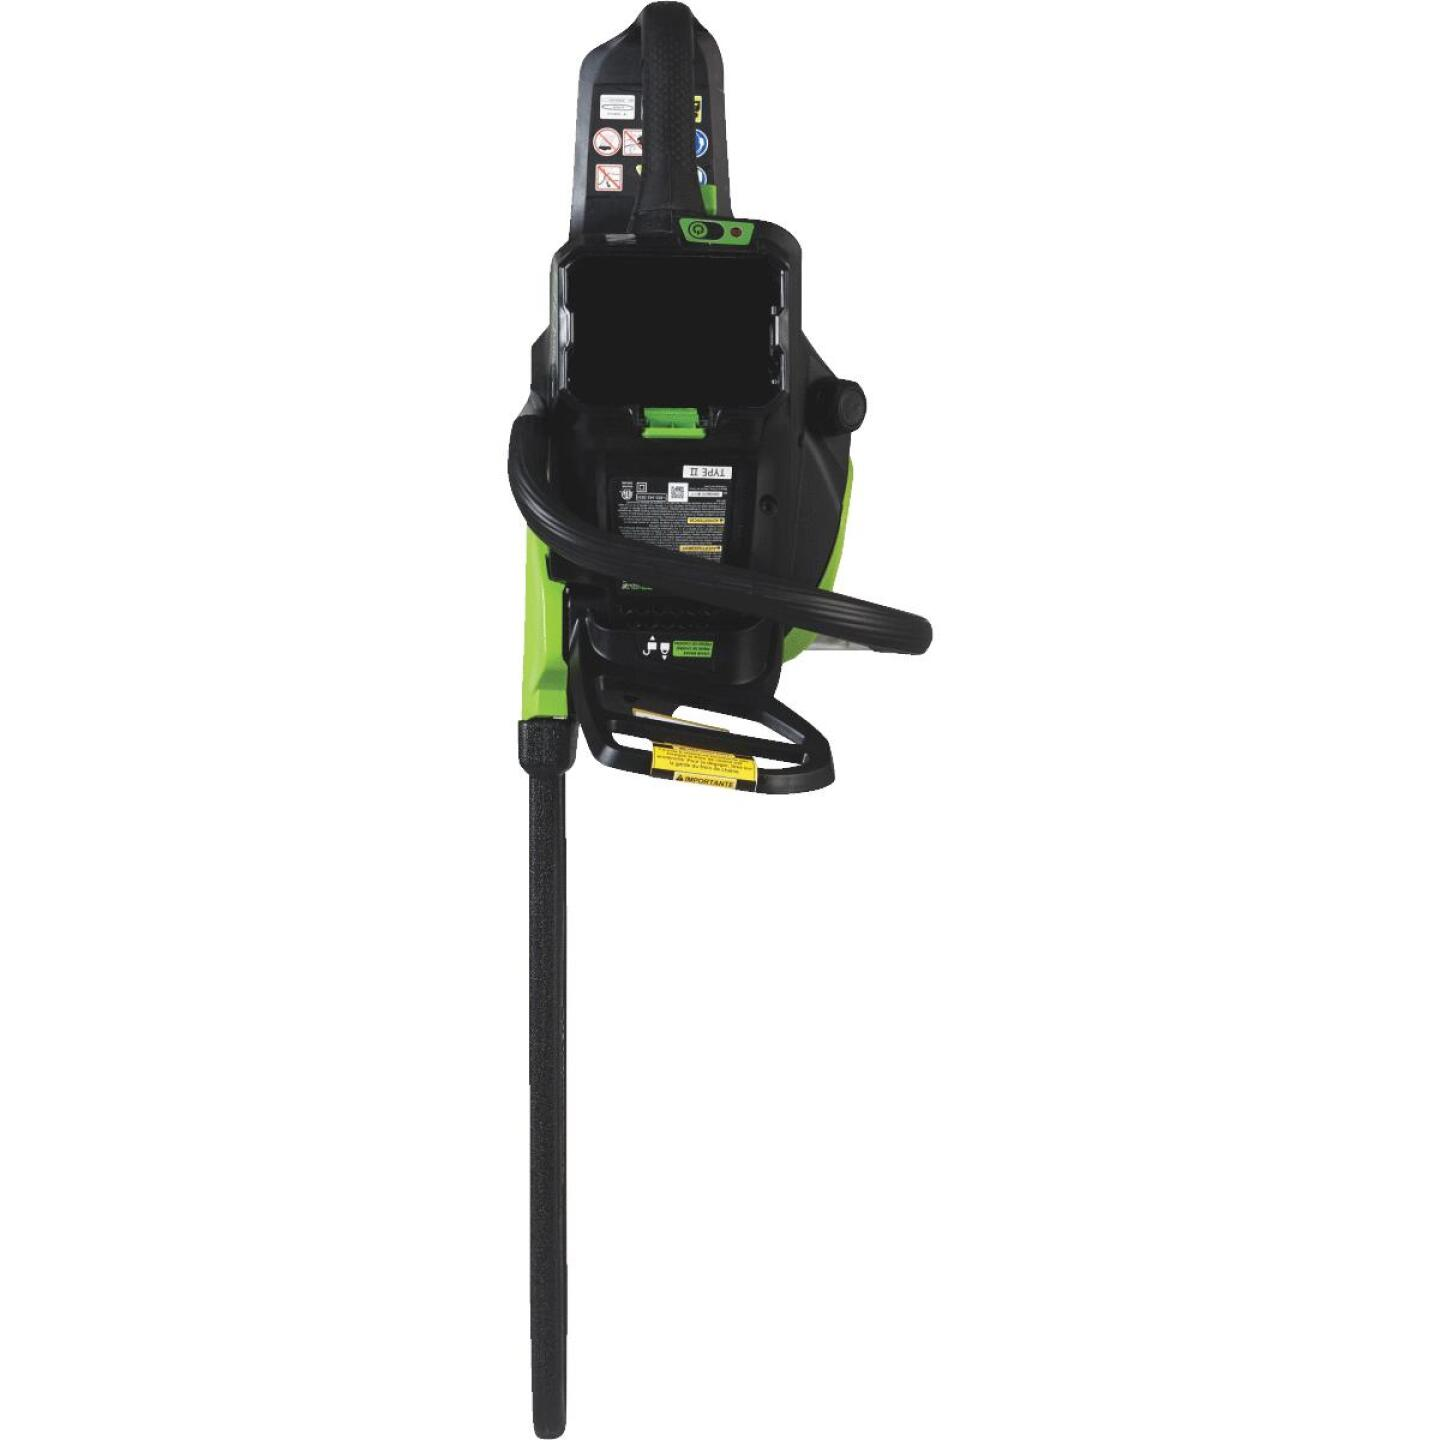 Greenworks Pro 18 In. 80V Lithium Ion Brushless Cordless Chainsaw Image 3